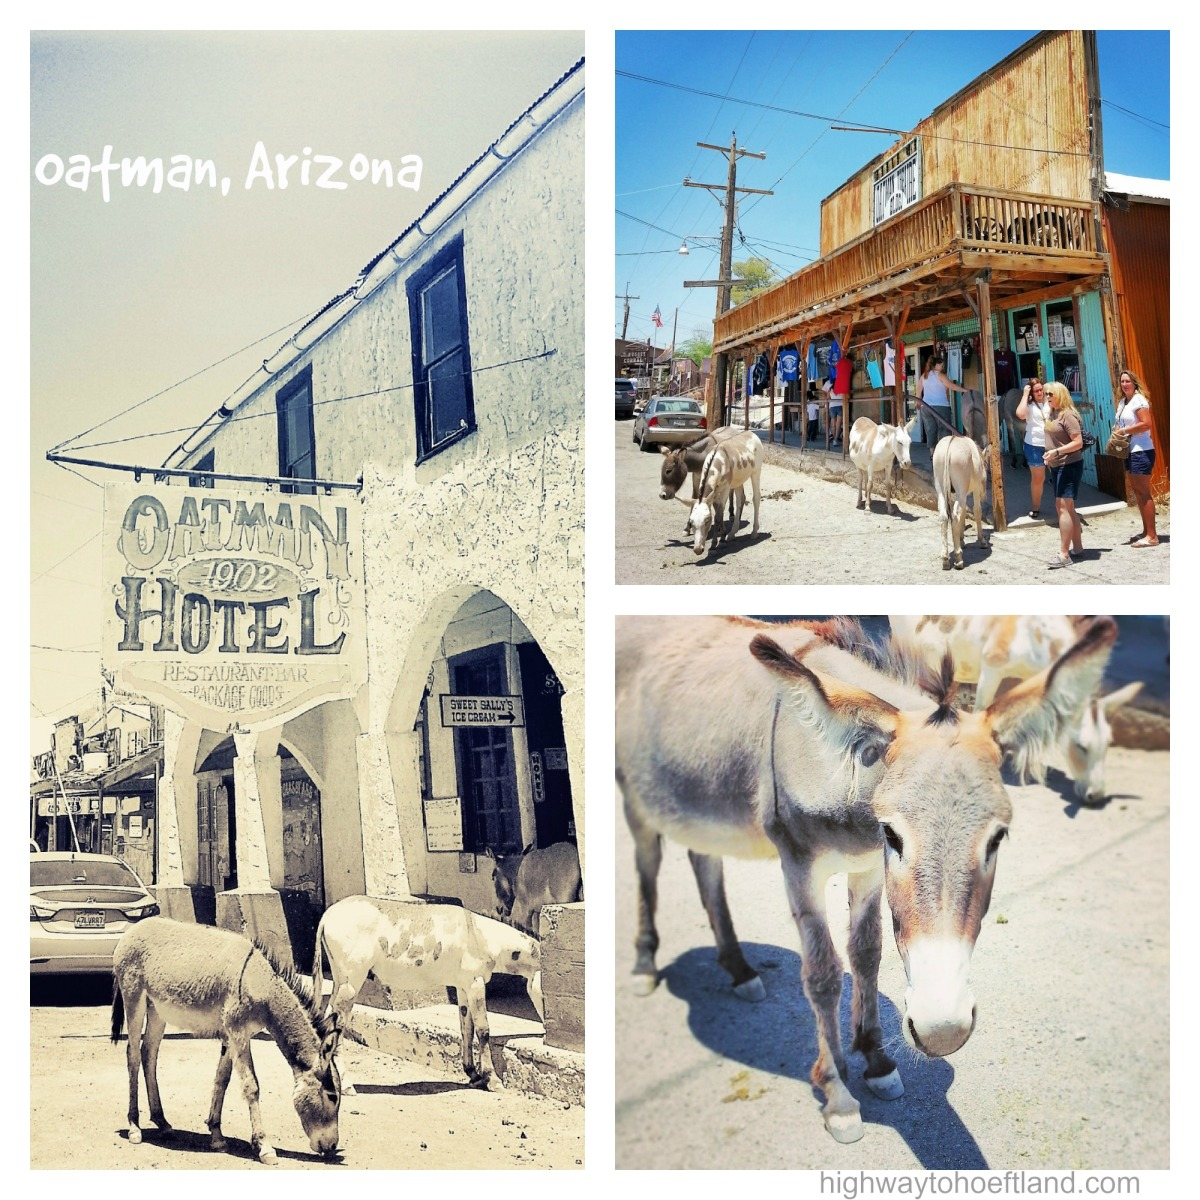 Old Western Charm and Burros Galore in Oatman, Arizona